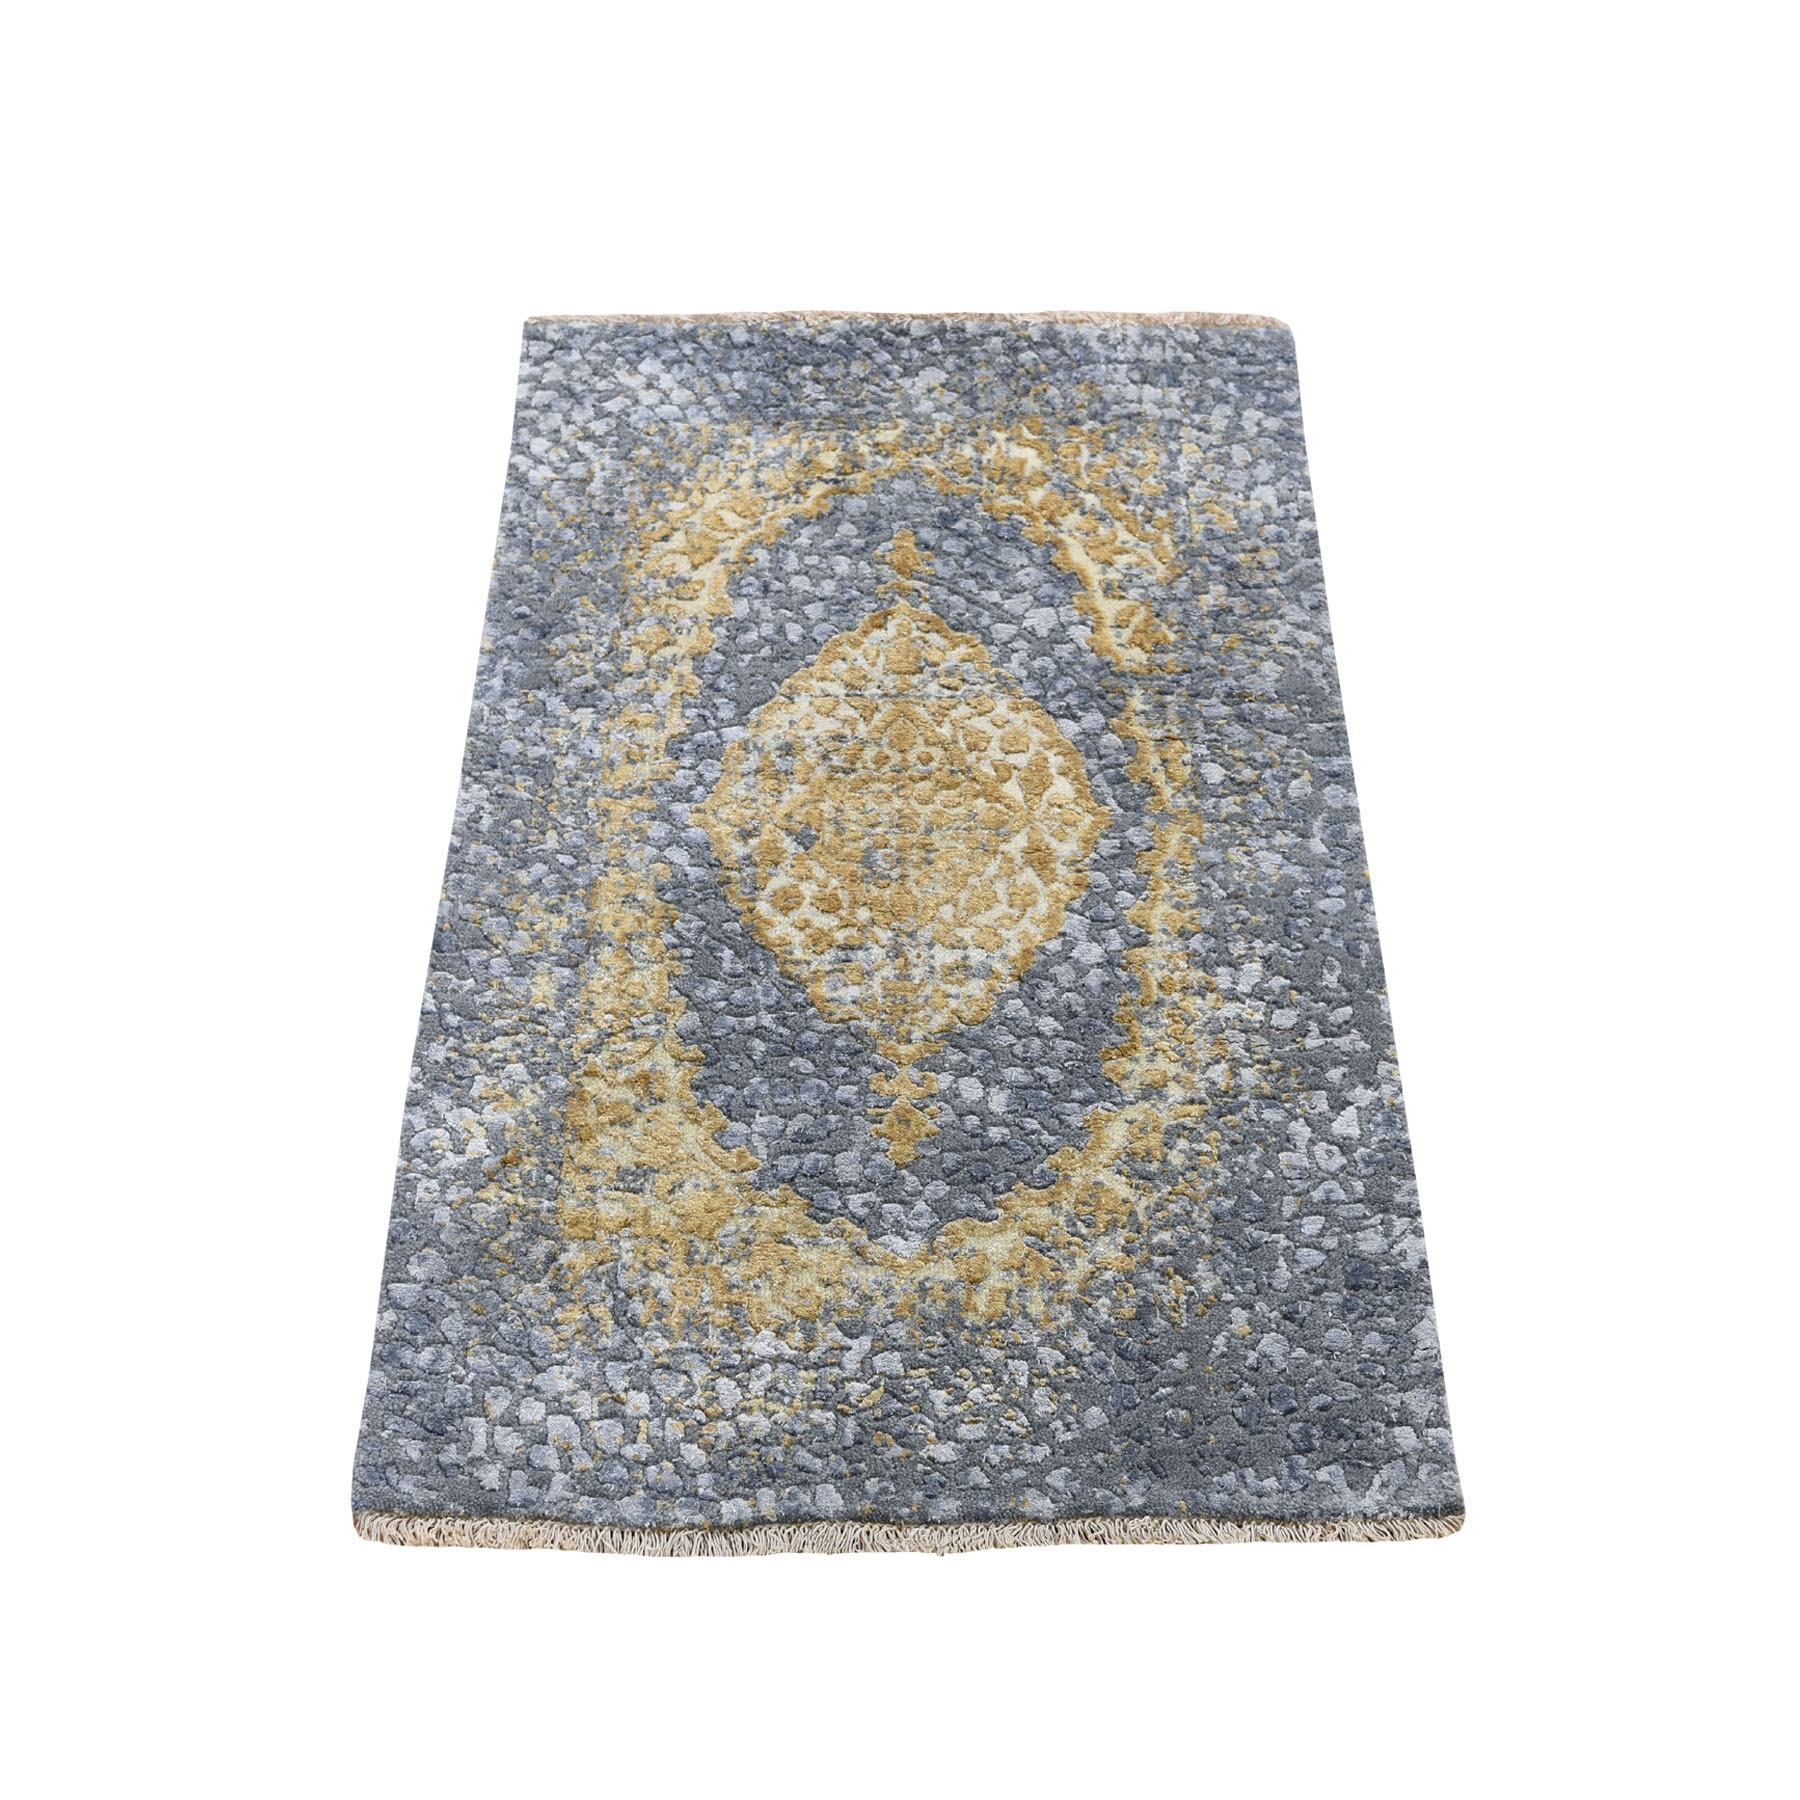 2'X3' Gray-Gold Persian Design Wool And Pure Silk Hand Knotted Oriental Rug moad7ec0